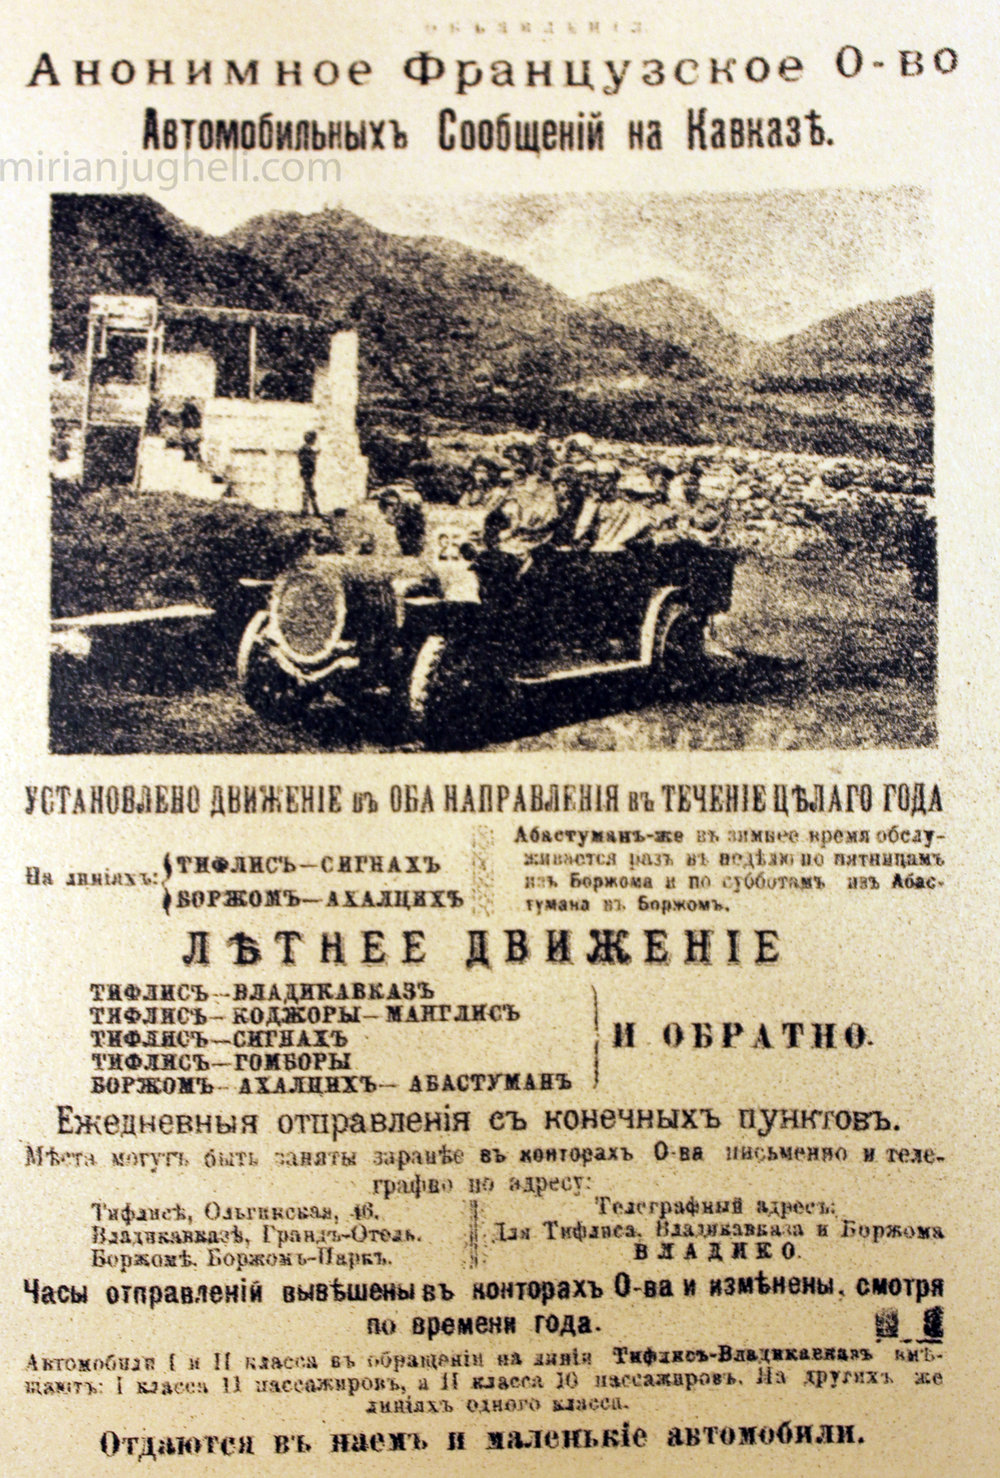 20th_century_georgian_advertising-20.jpg